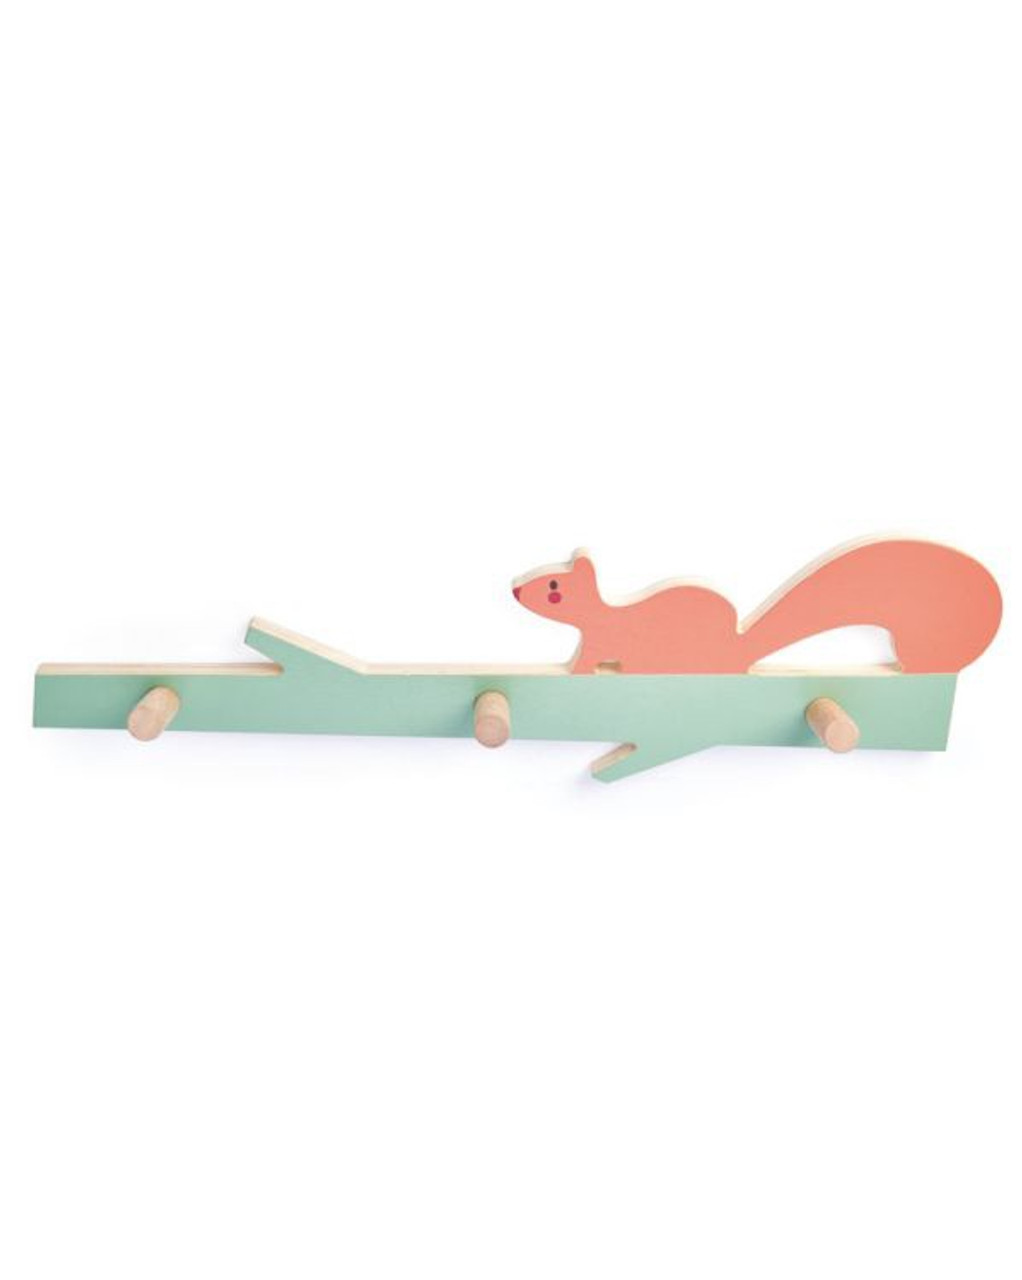 Tender Leaf Toys Forest Squirrel Wooden Hooks at Baby Barn Discounts A sweet 3 peg coat hook with a squirrel design from Tender Leaf Toys.